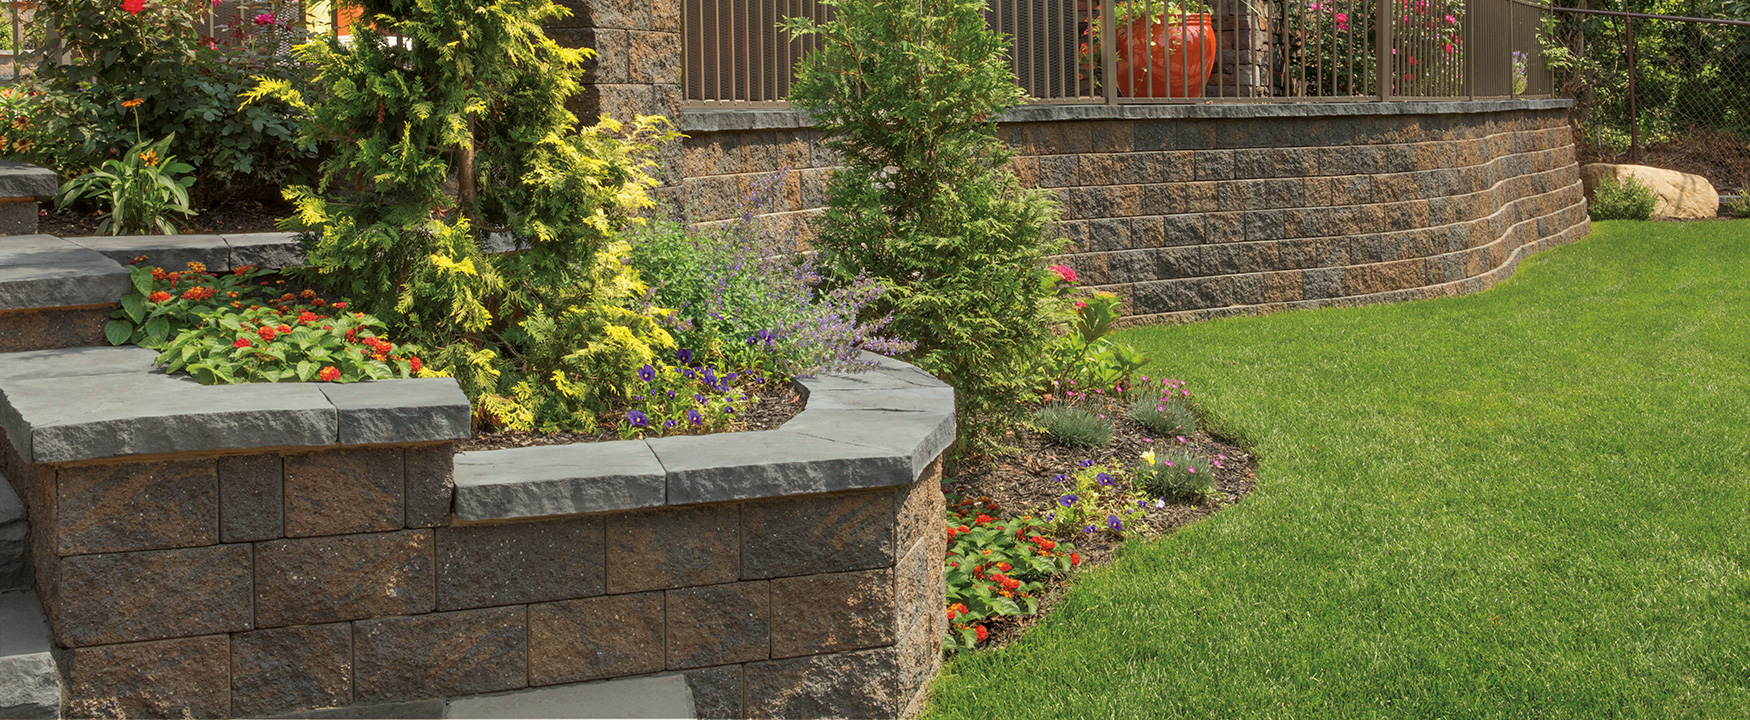 Retaining wall with landscaped lawn and plant beds